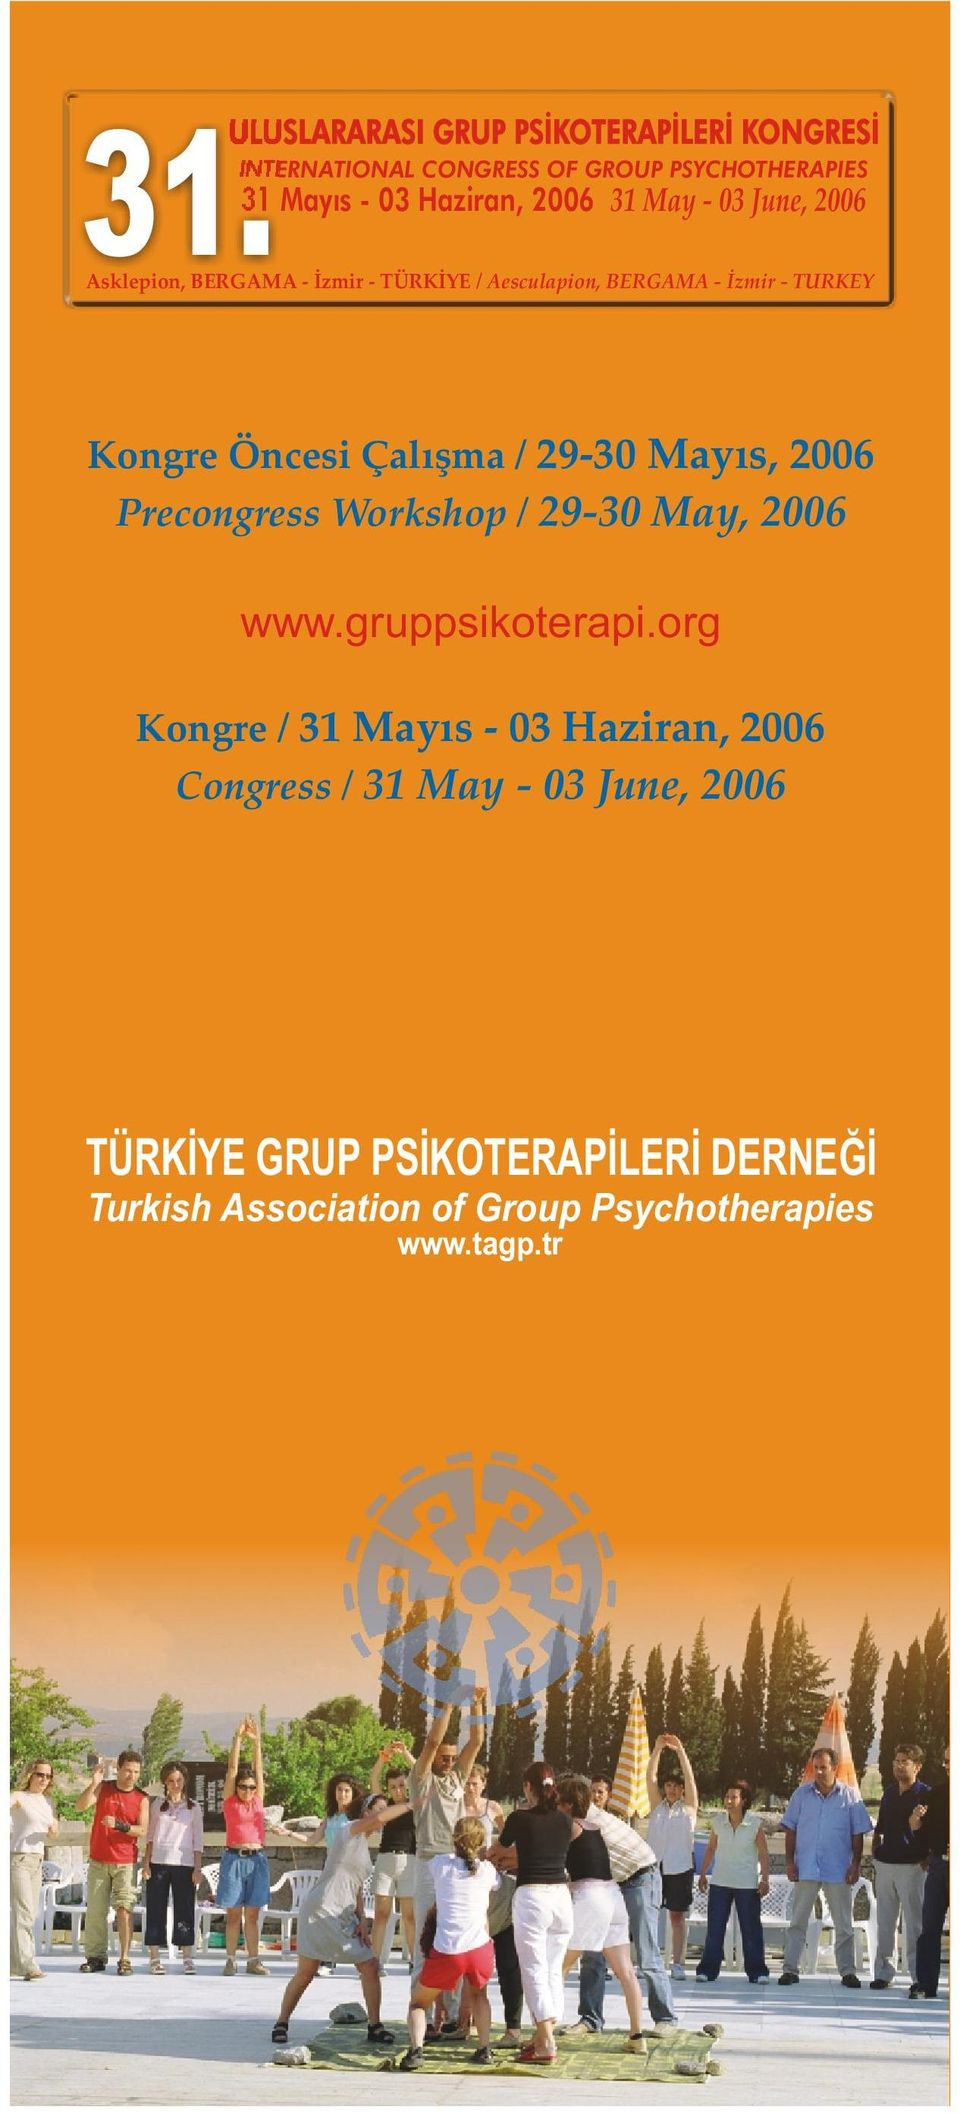 29-30 Mayýs, 2006 Precongress Workshop / 29-30 May, 2006 www.gruppsikoterapi.